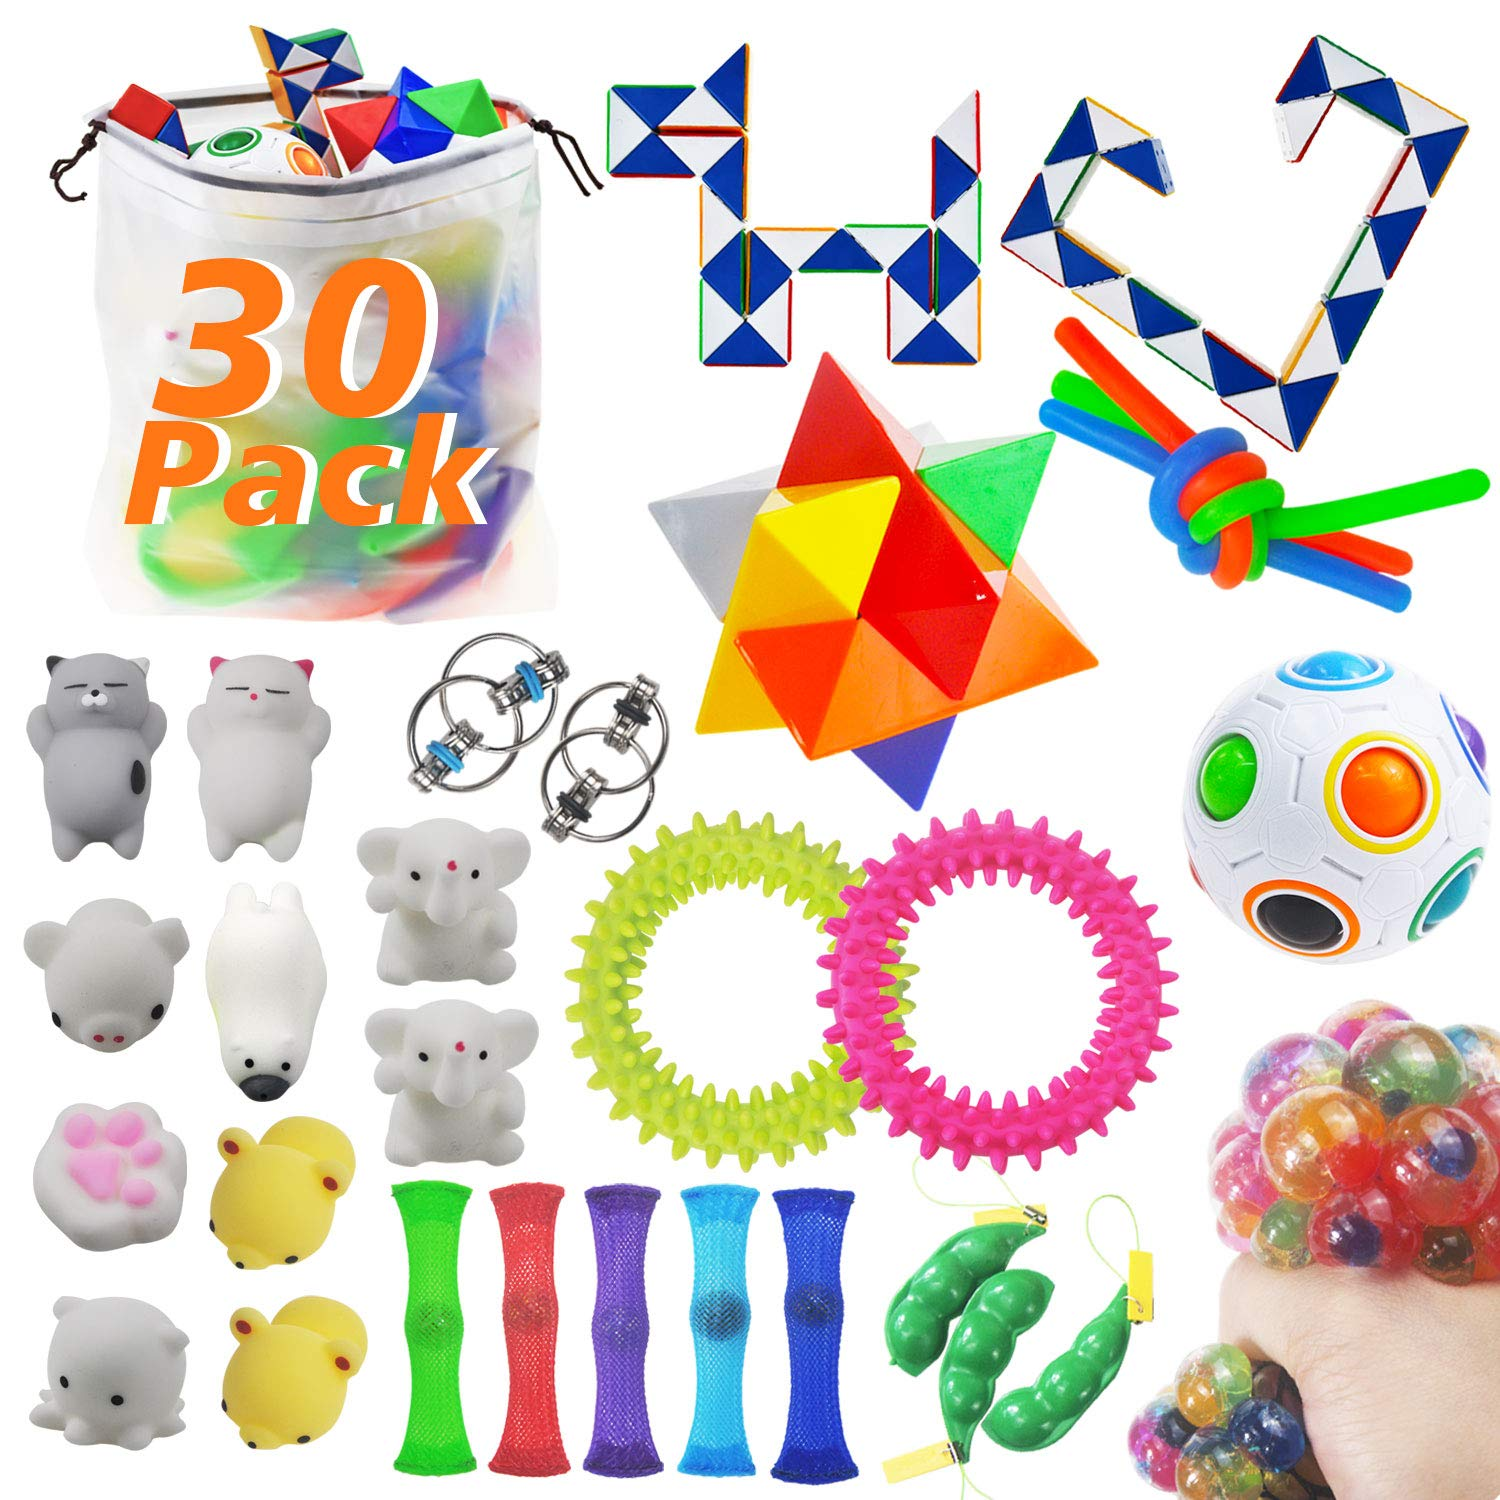 MEEKEEWAY 30 Pack Sensory Toys Set, Bundle Stress Relief Hand Fidget Toys for Kids and Adults, Special Toys Assortment for Birthday Party Favors, Classroom Rewards Prizes, Carnival, Goodie Bag Fillers by MEEKEEWAY (Image #1)